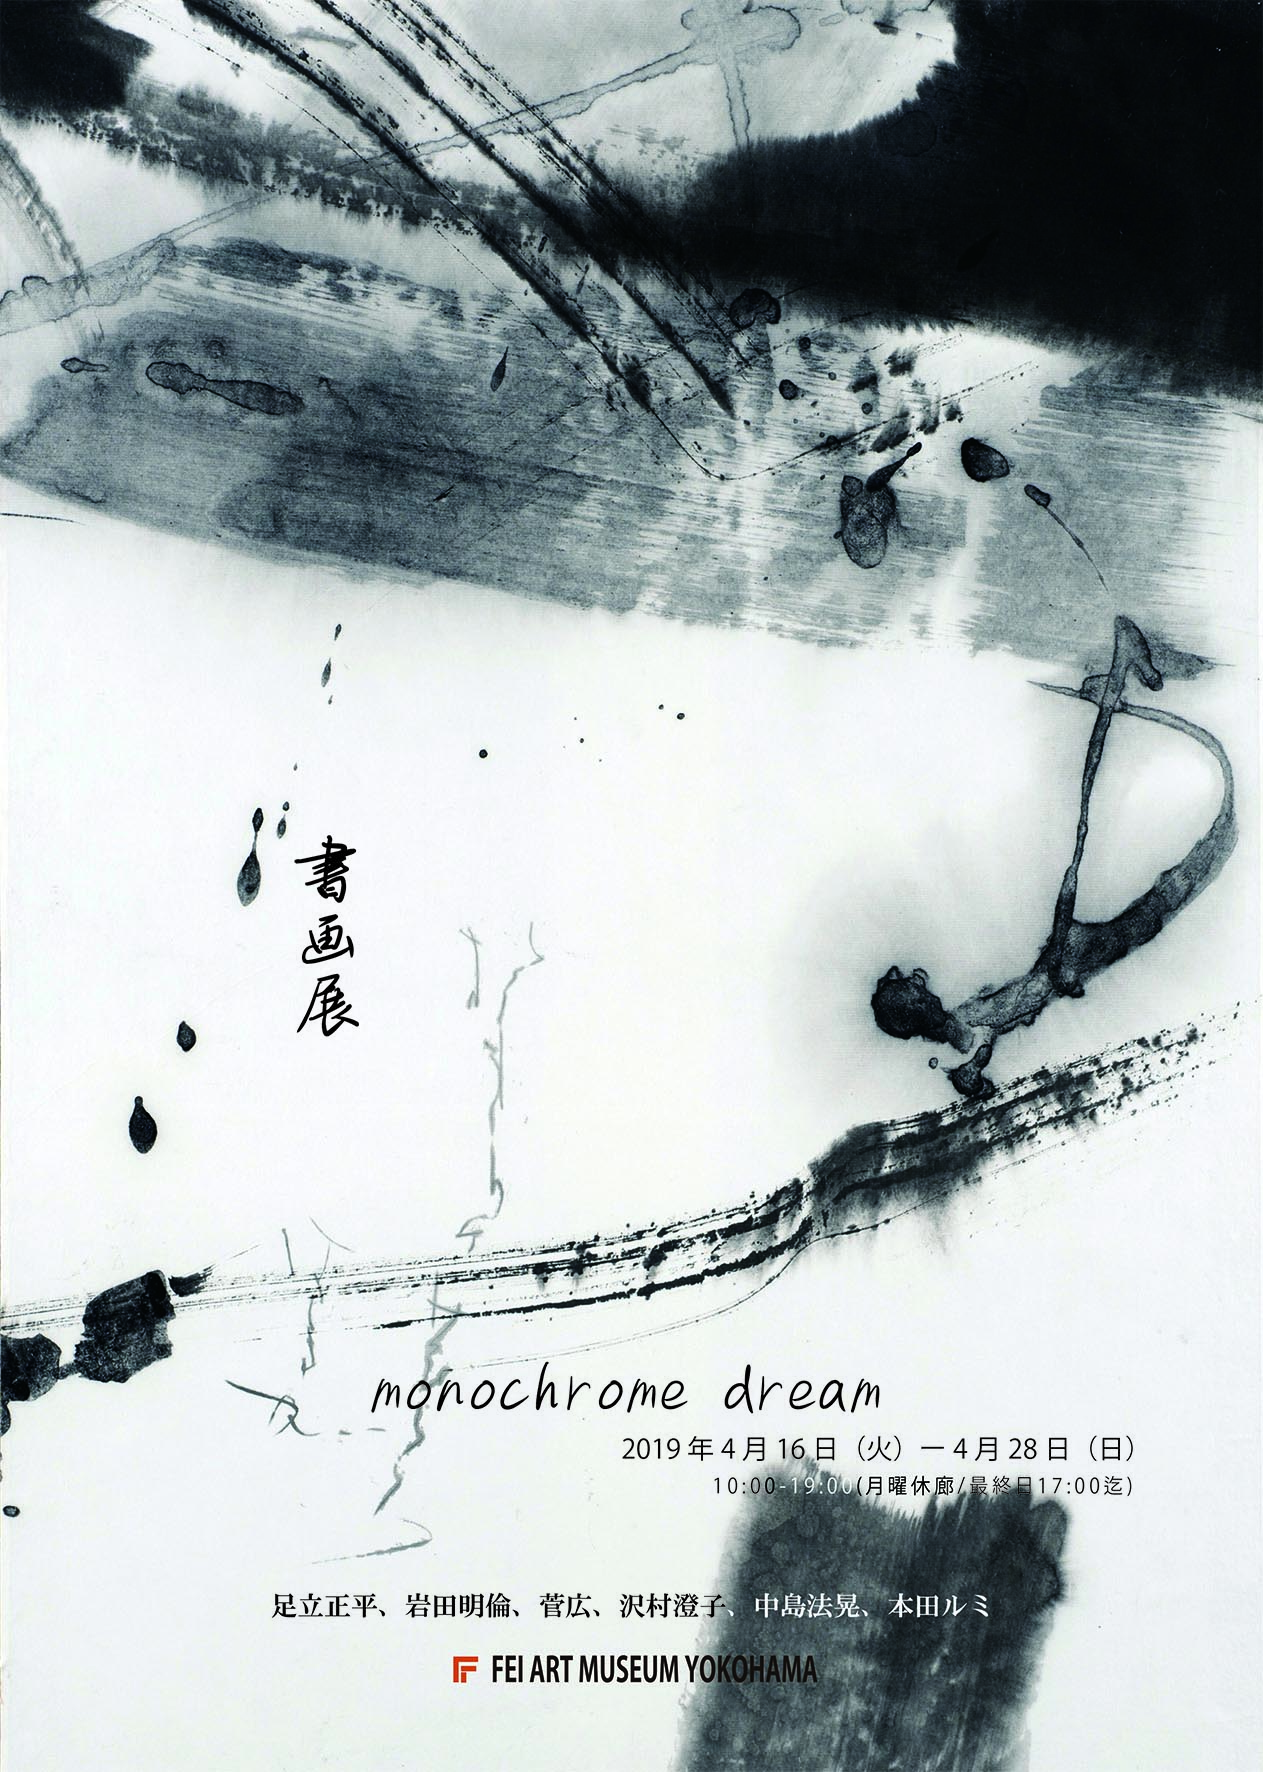 書画展-monochrome dream-